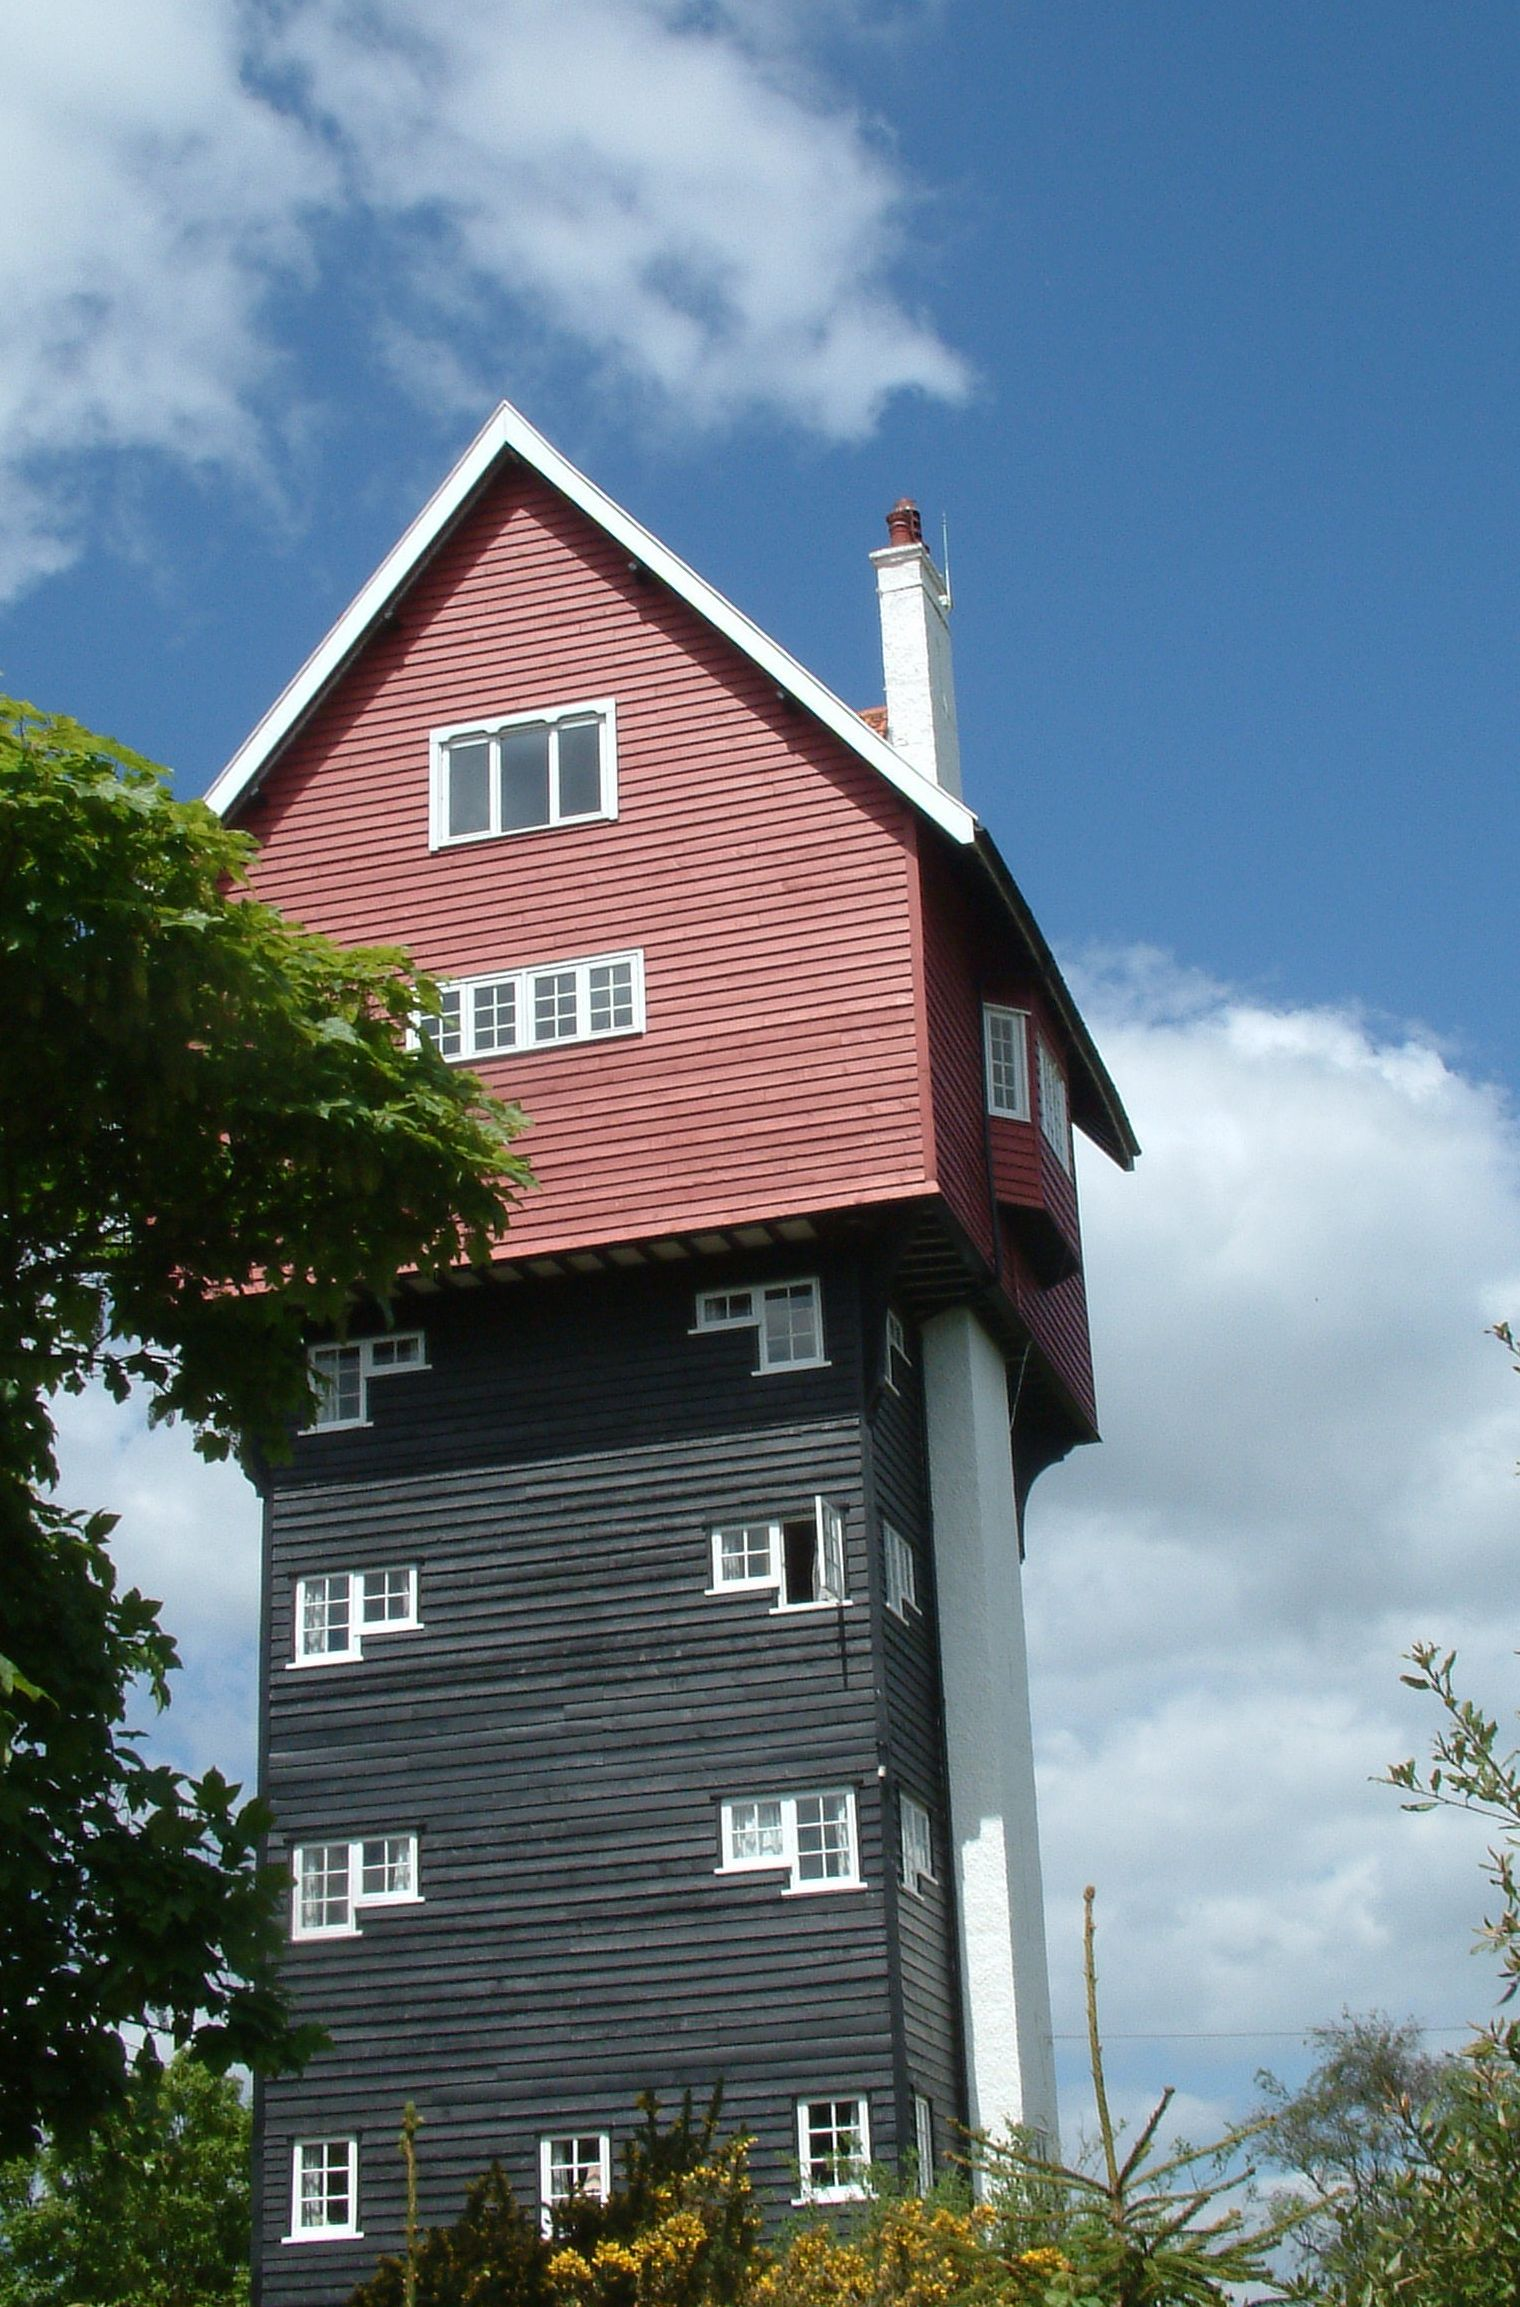 The House in the clouds, Thorpeness Suffolk